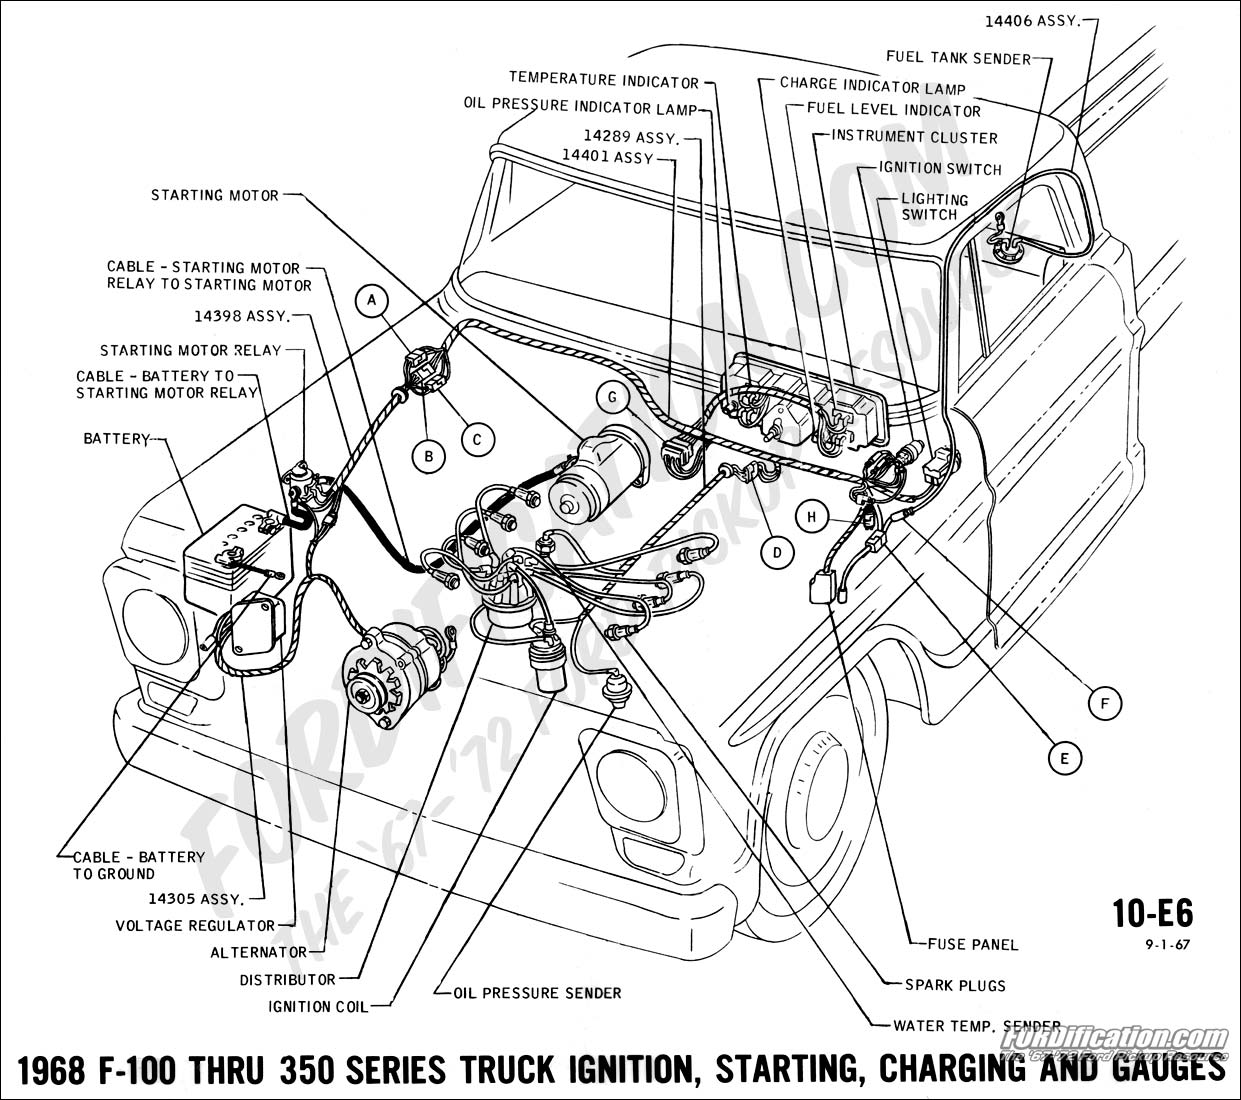 Nissan Frontier Starter Schematics Wiring Diagram Will Be A Thing Ecu For 2010 Ford Truck Technical Drawings And Section H 2001 Location